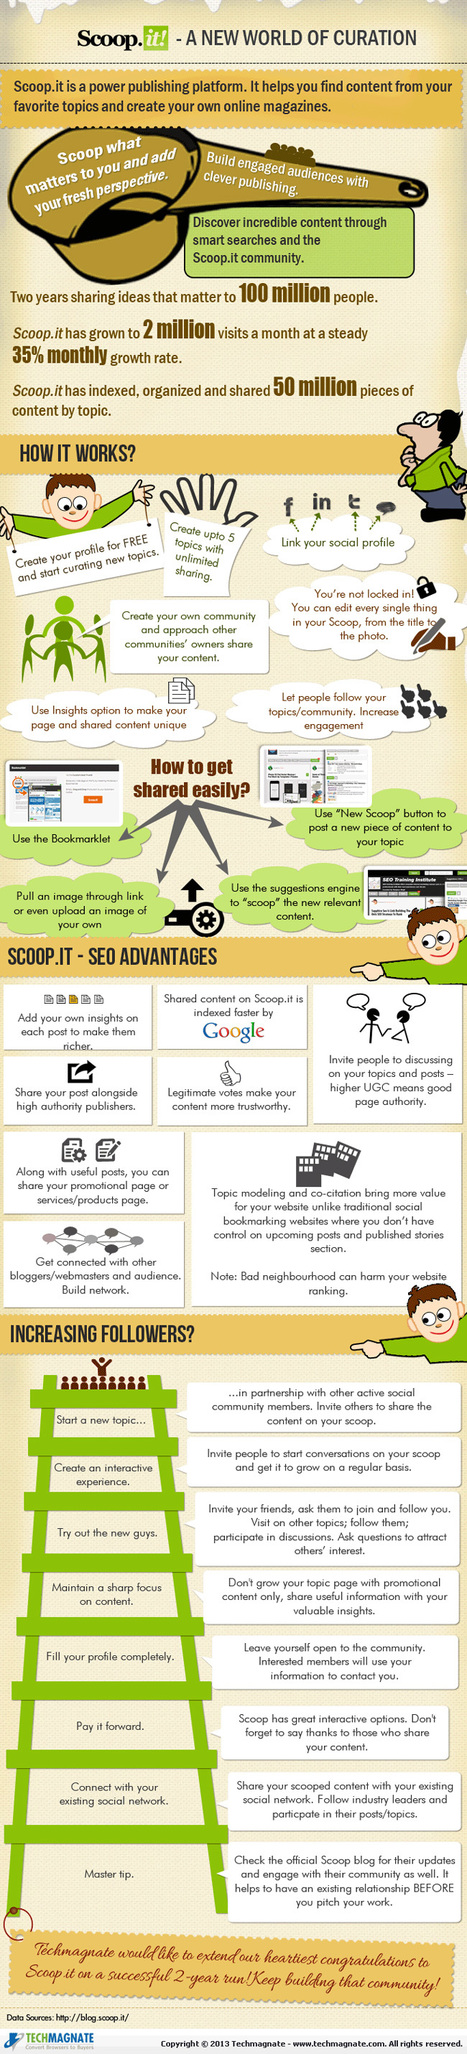 Scoop.It for SEO – A New World of Curation [Infographic] | Online tips & social media nieuws | Scoop.it